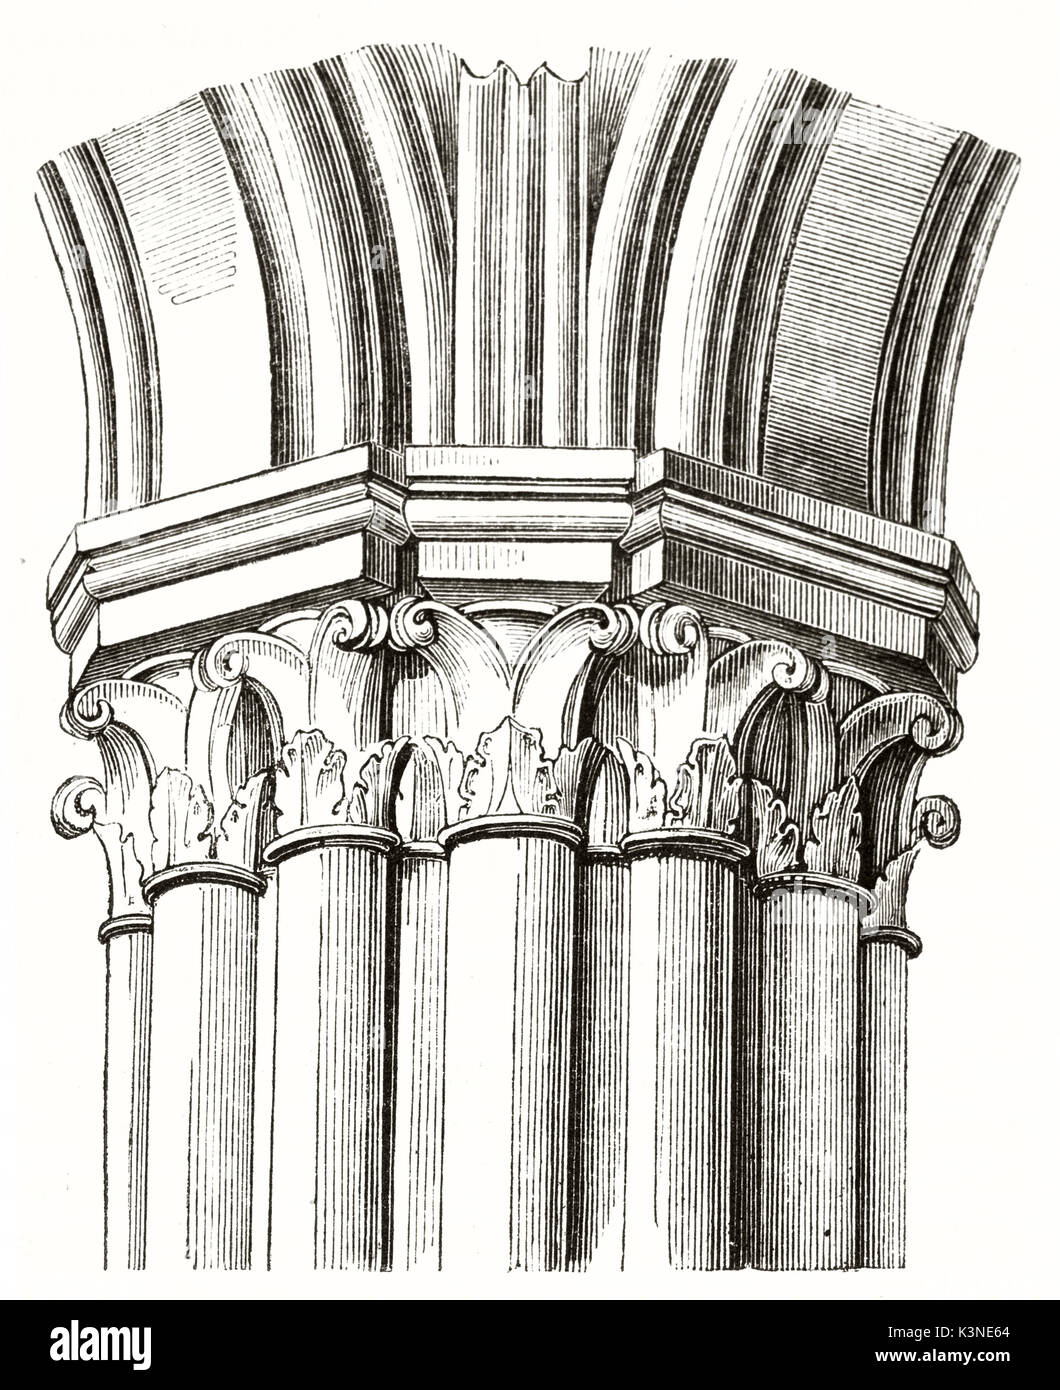 Beam of columns composing a pillar in the aisle of Notre-Dame de Paris France. Isolated architectonic element by unidentified author published on Magasin Pittoresque Paris 1839 - Stock Image